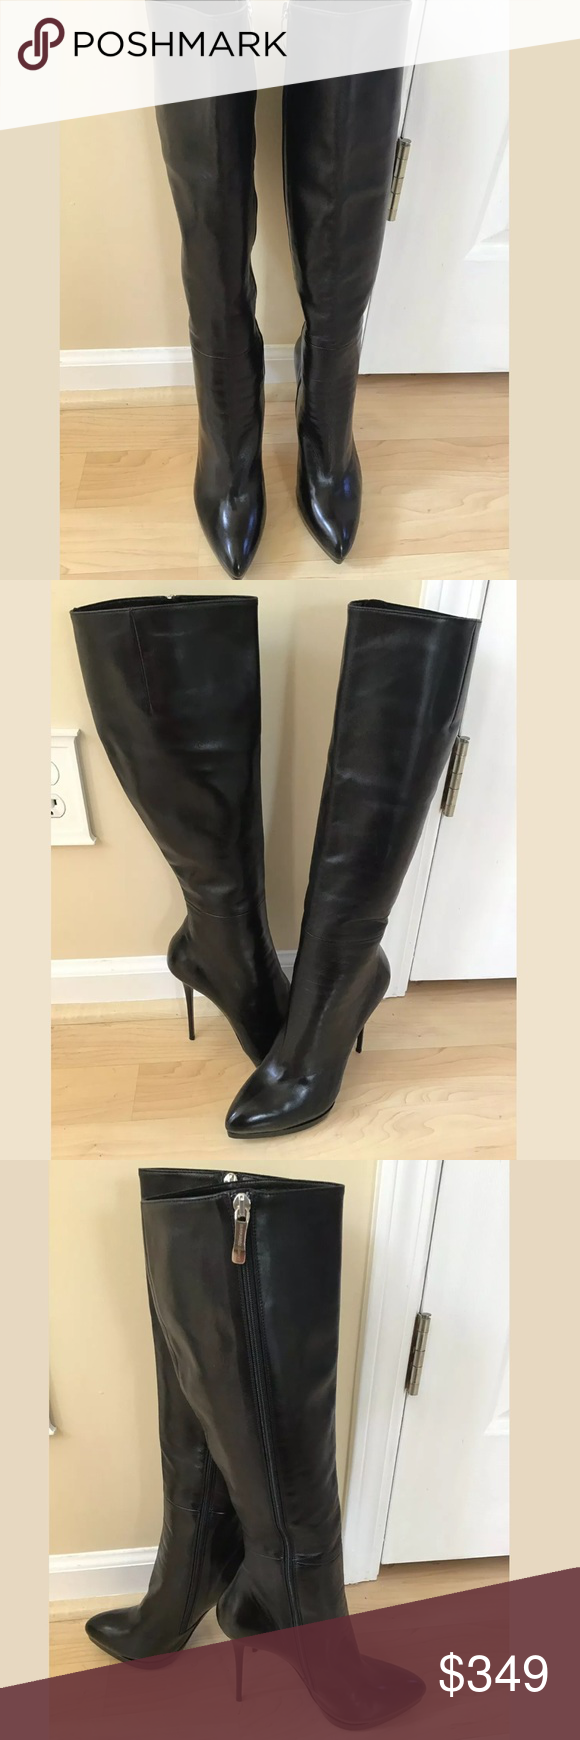 Gianmarco Lorenzi Black Leather Boots Every now and again I get an item to resal…